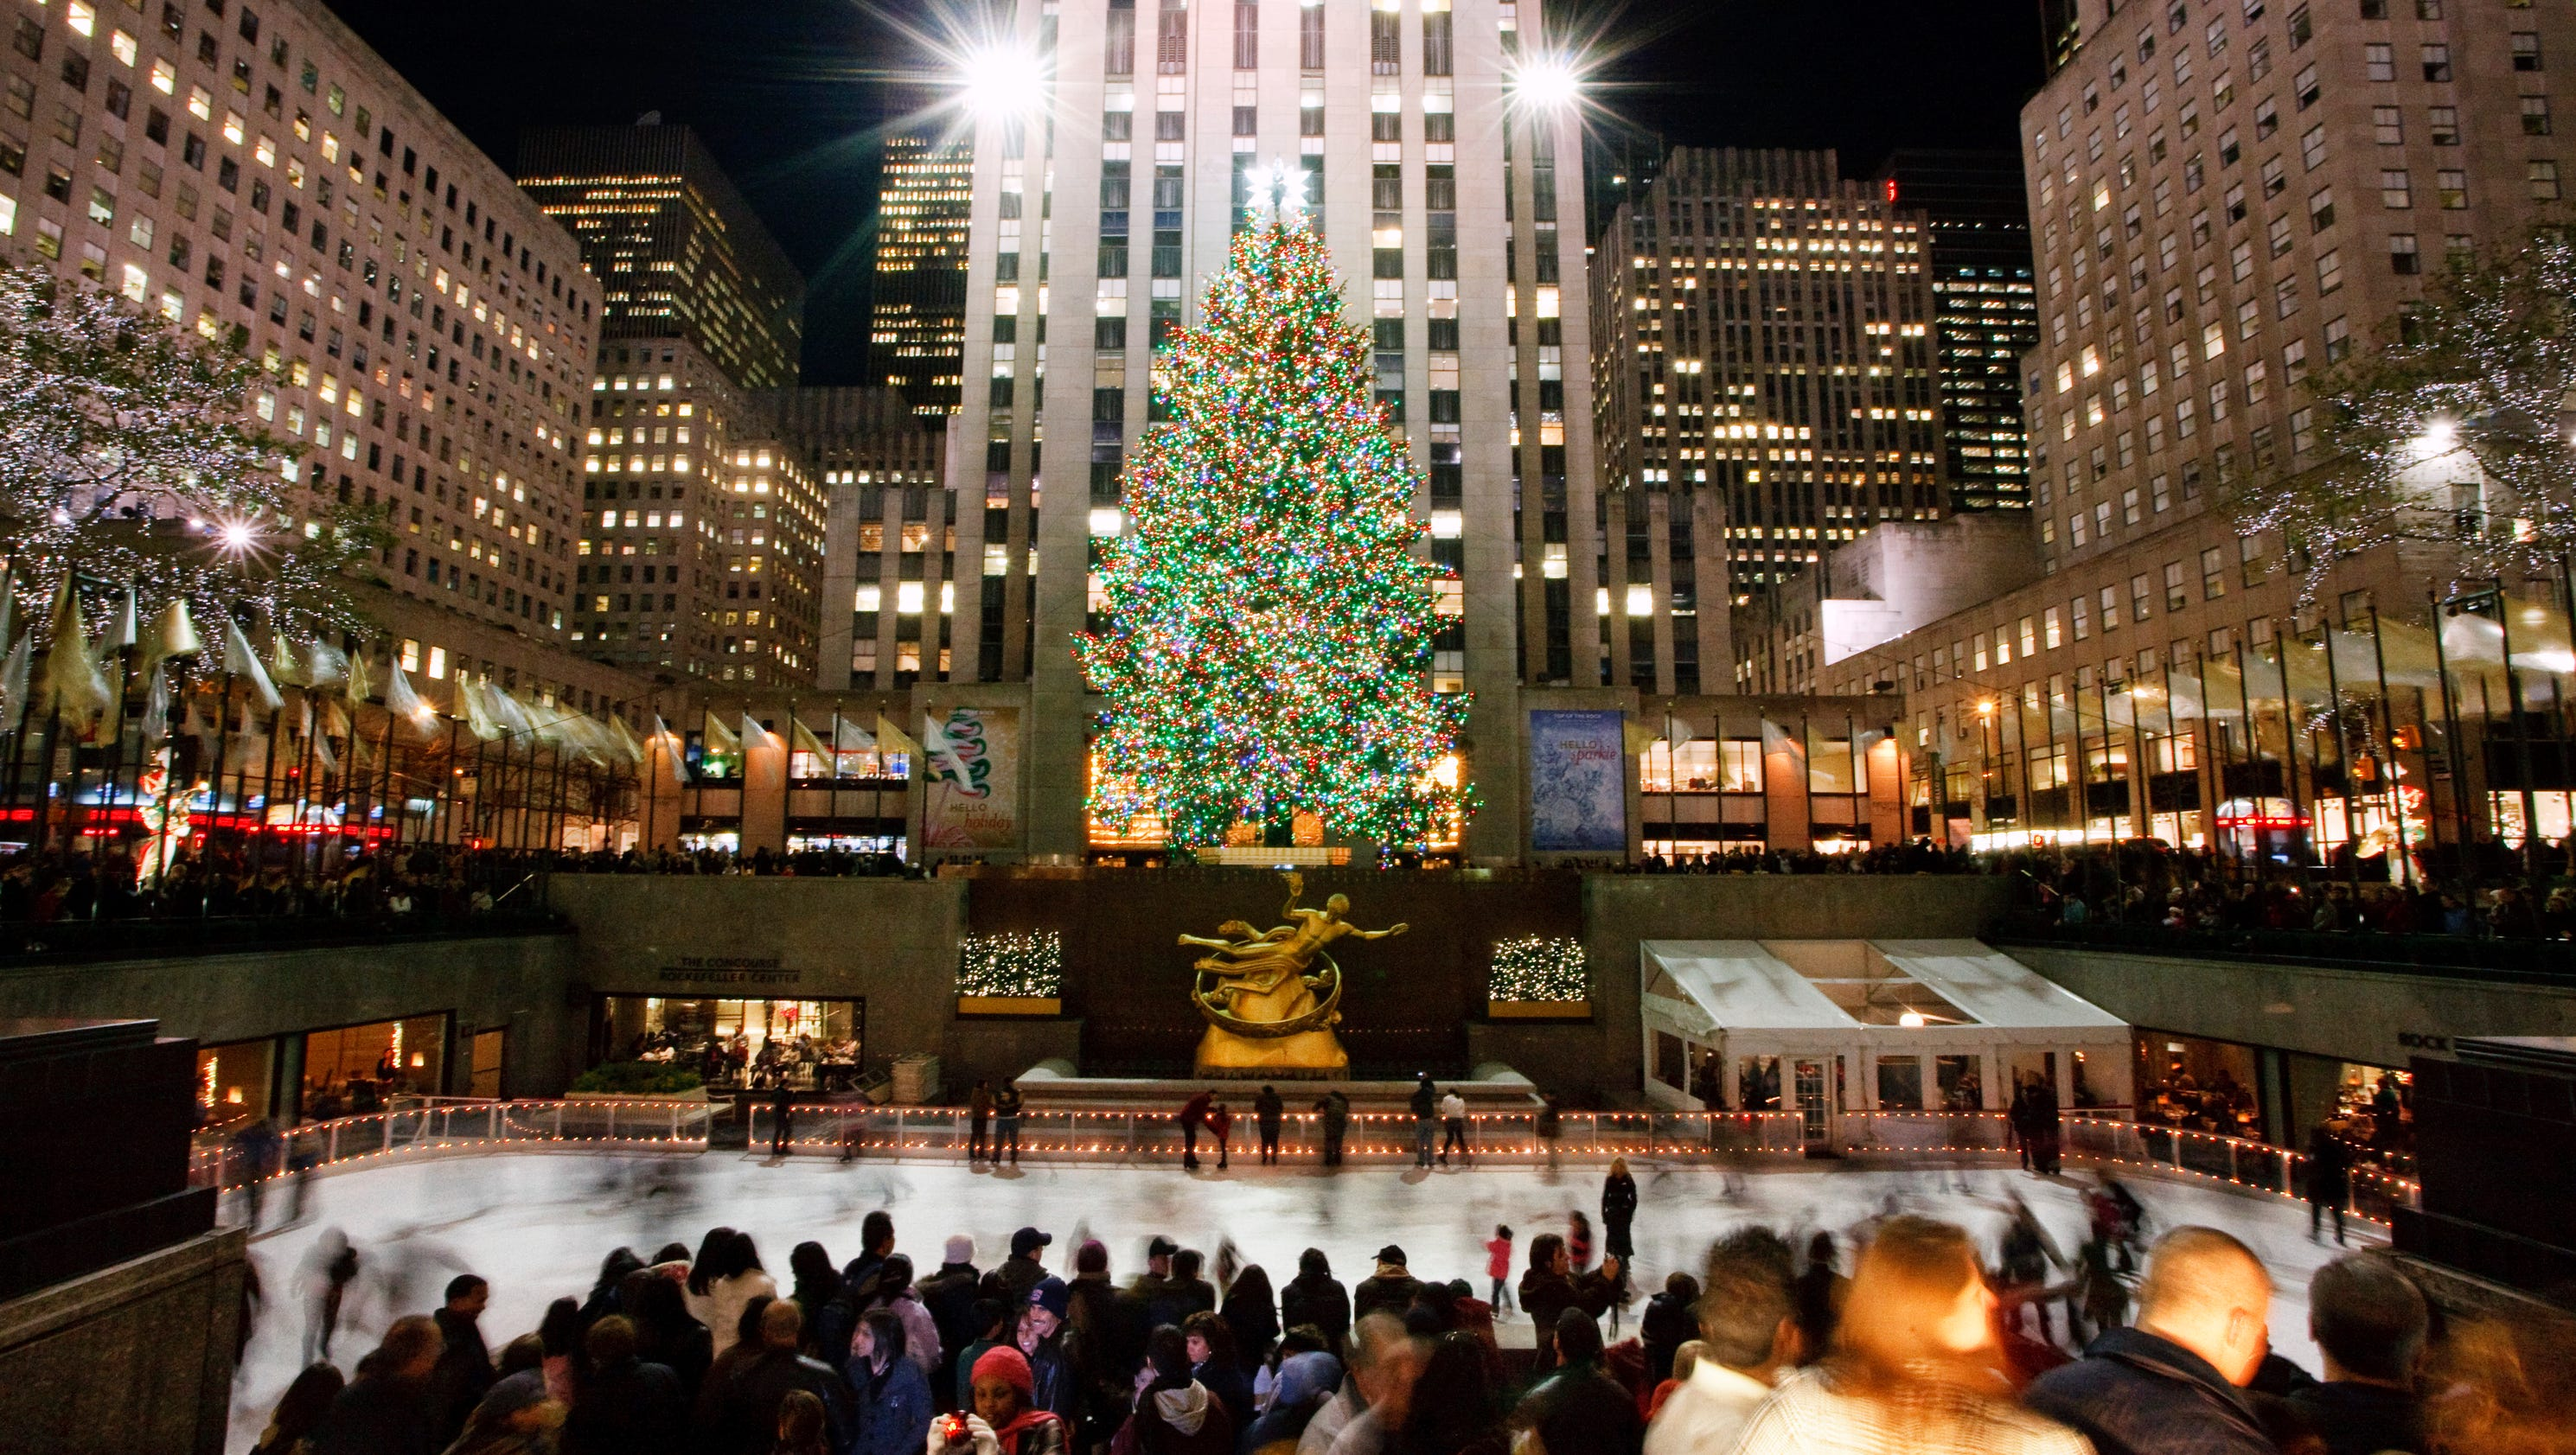 10best places to see holiday lights in nyc Best places to visit for christmas in usa